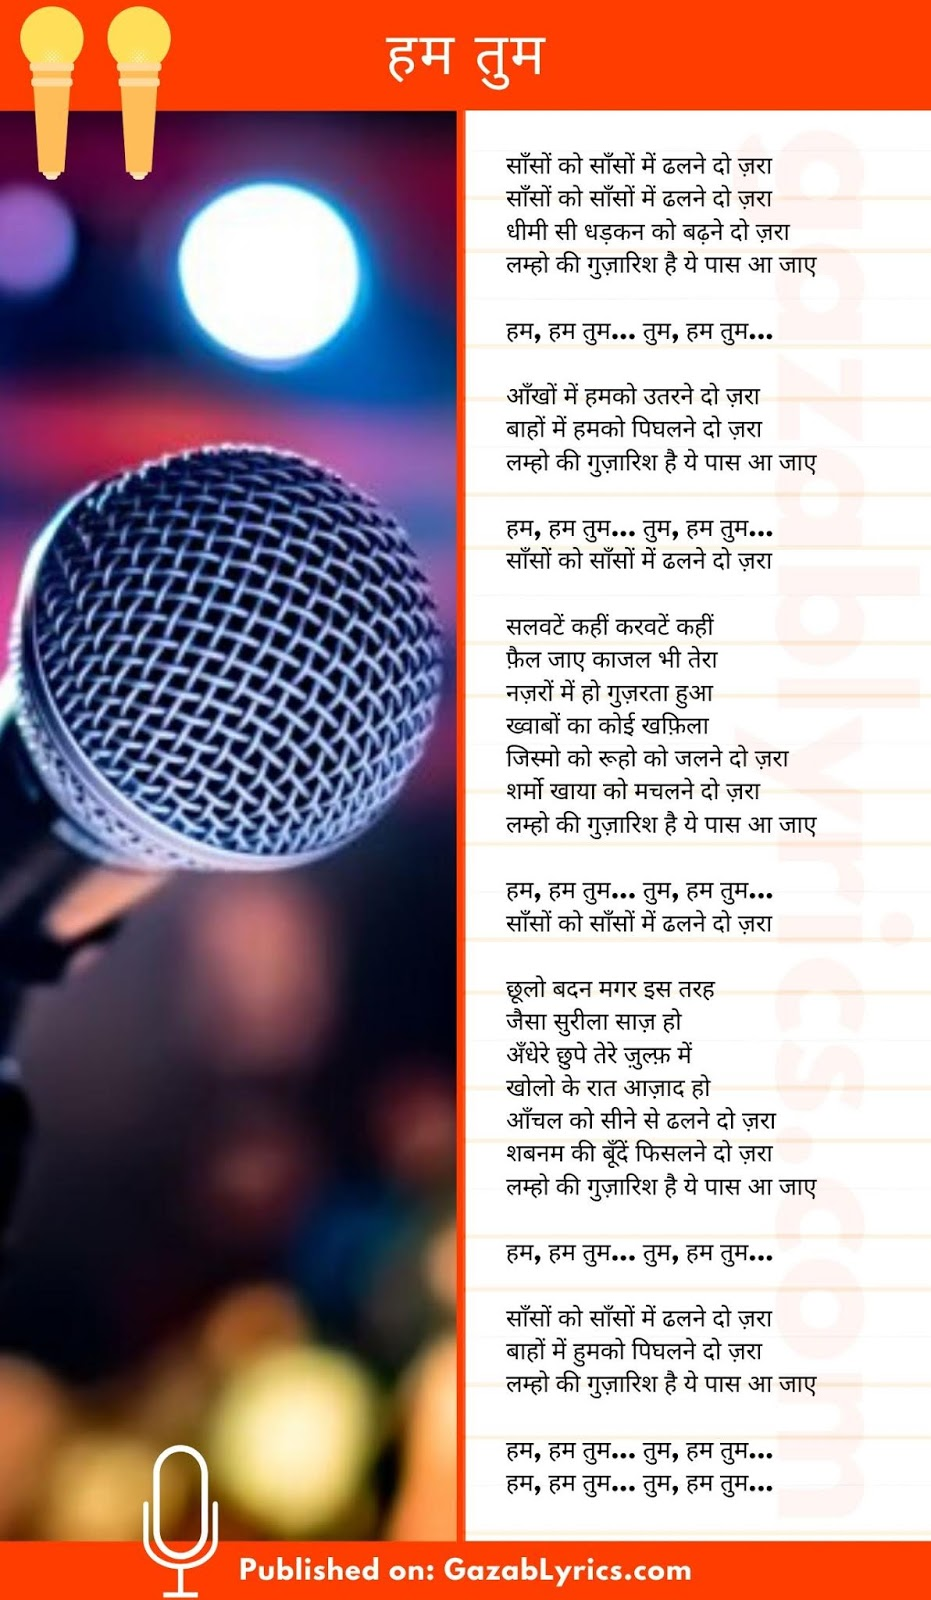 Hum Tum song lyrics image